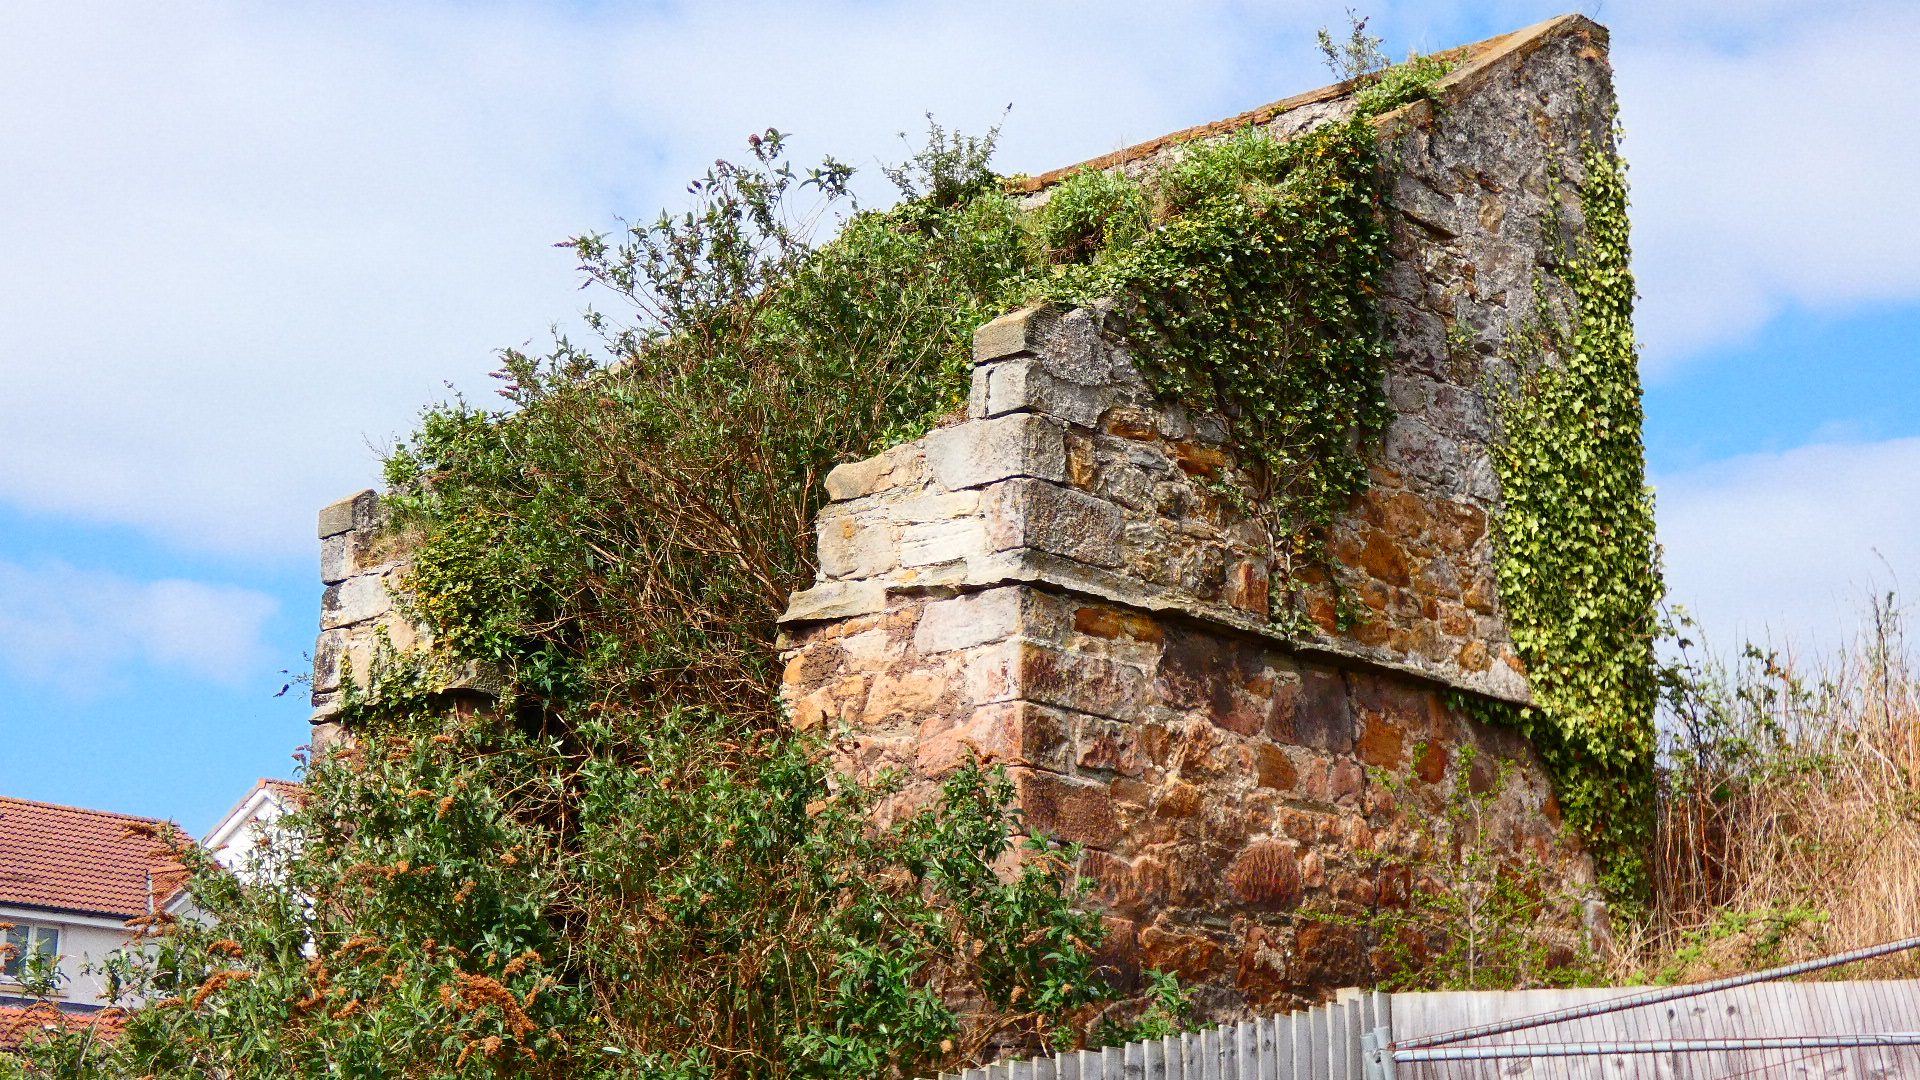 A developer wants to demolish the historic dovecot.